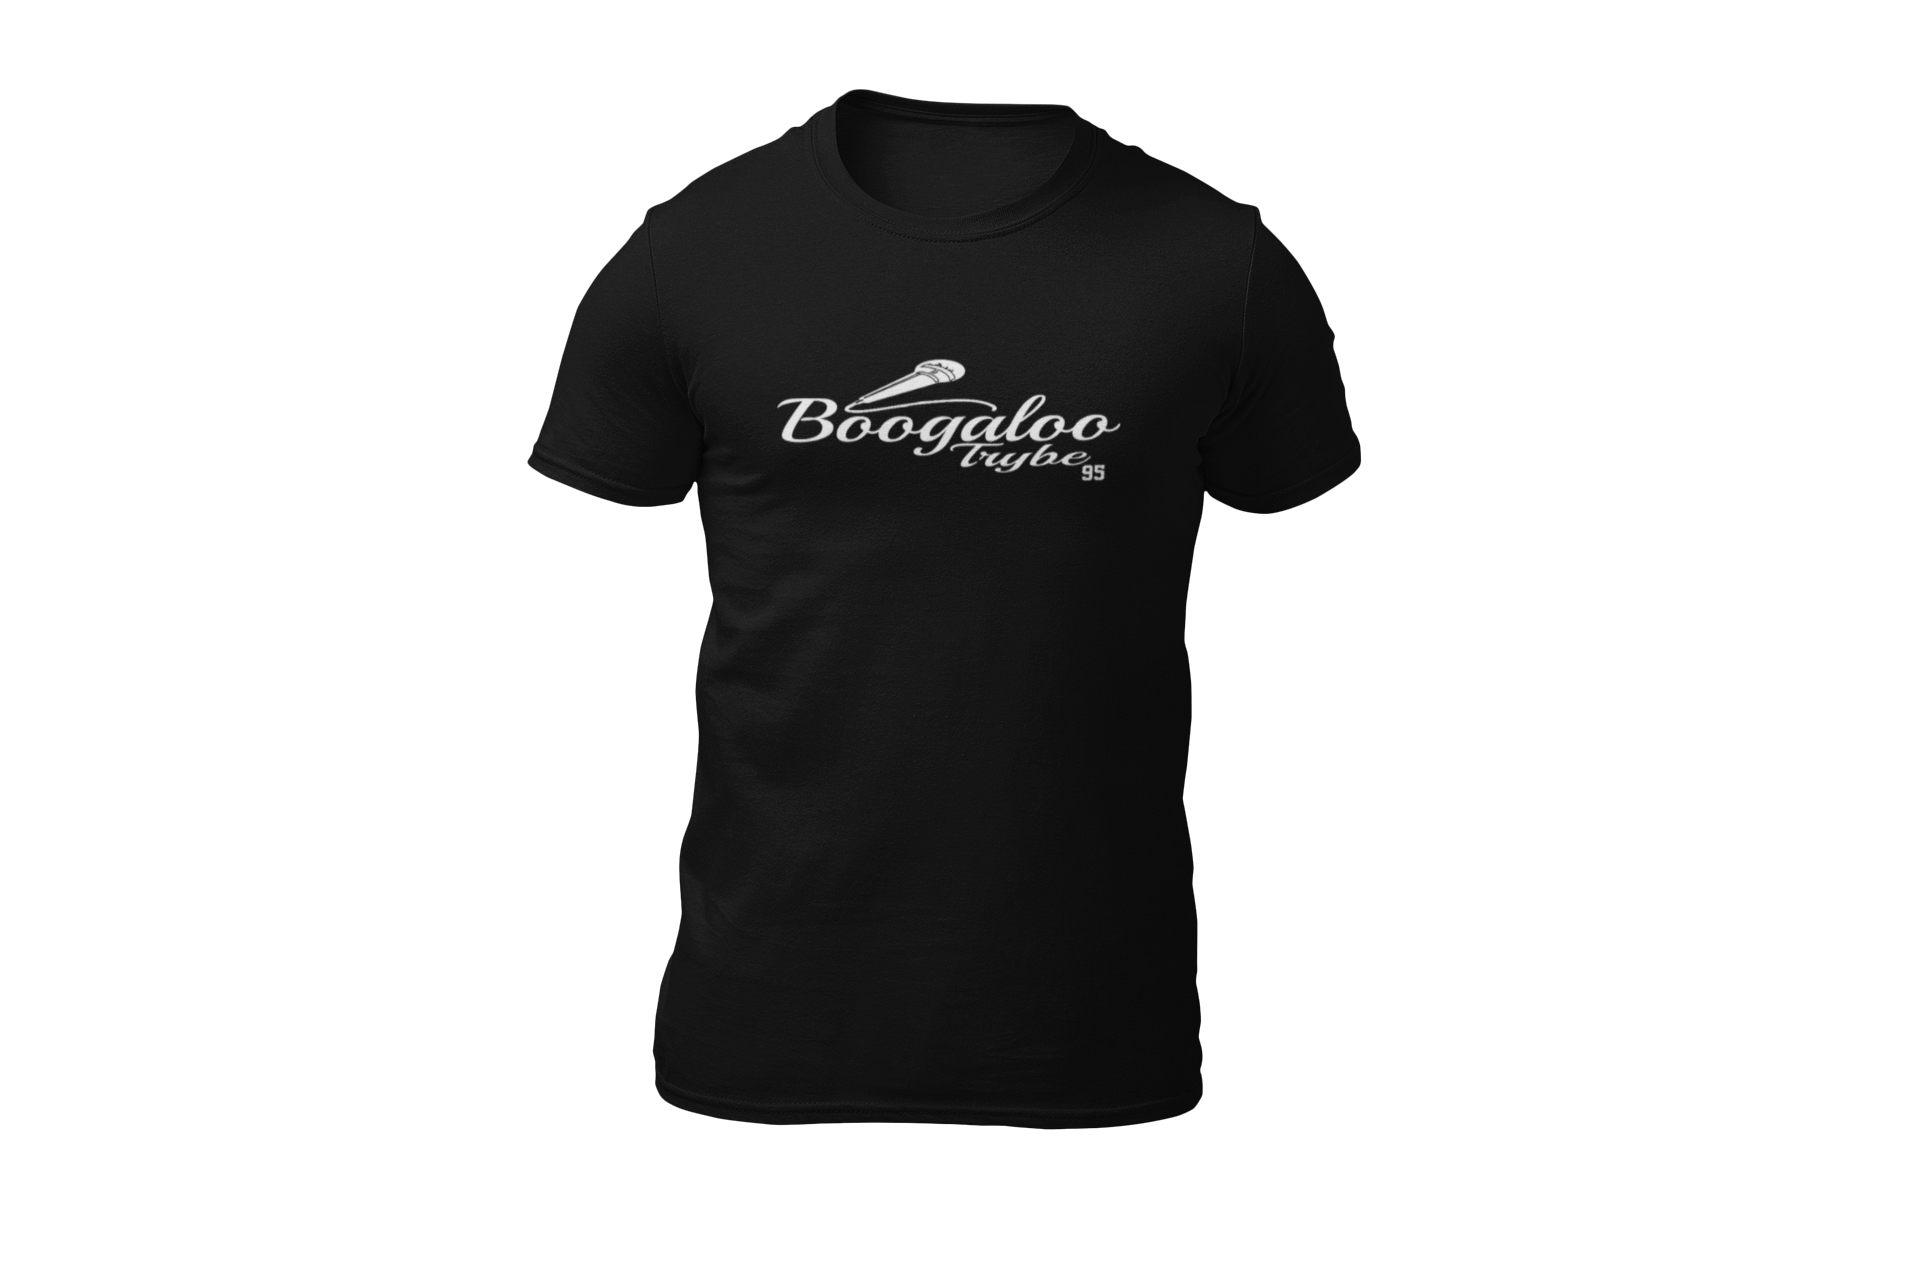 Boogaloo Trybe T-Shirt (Black)